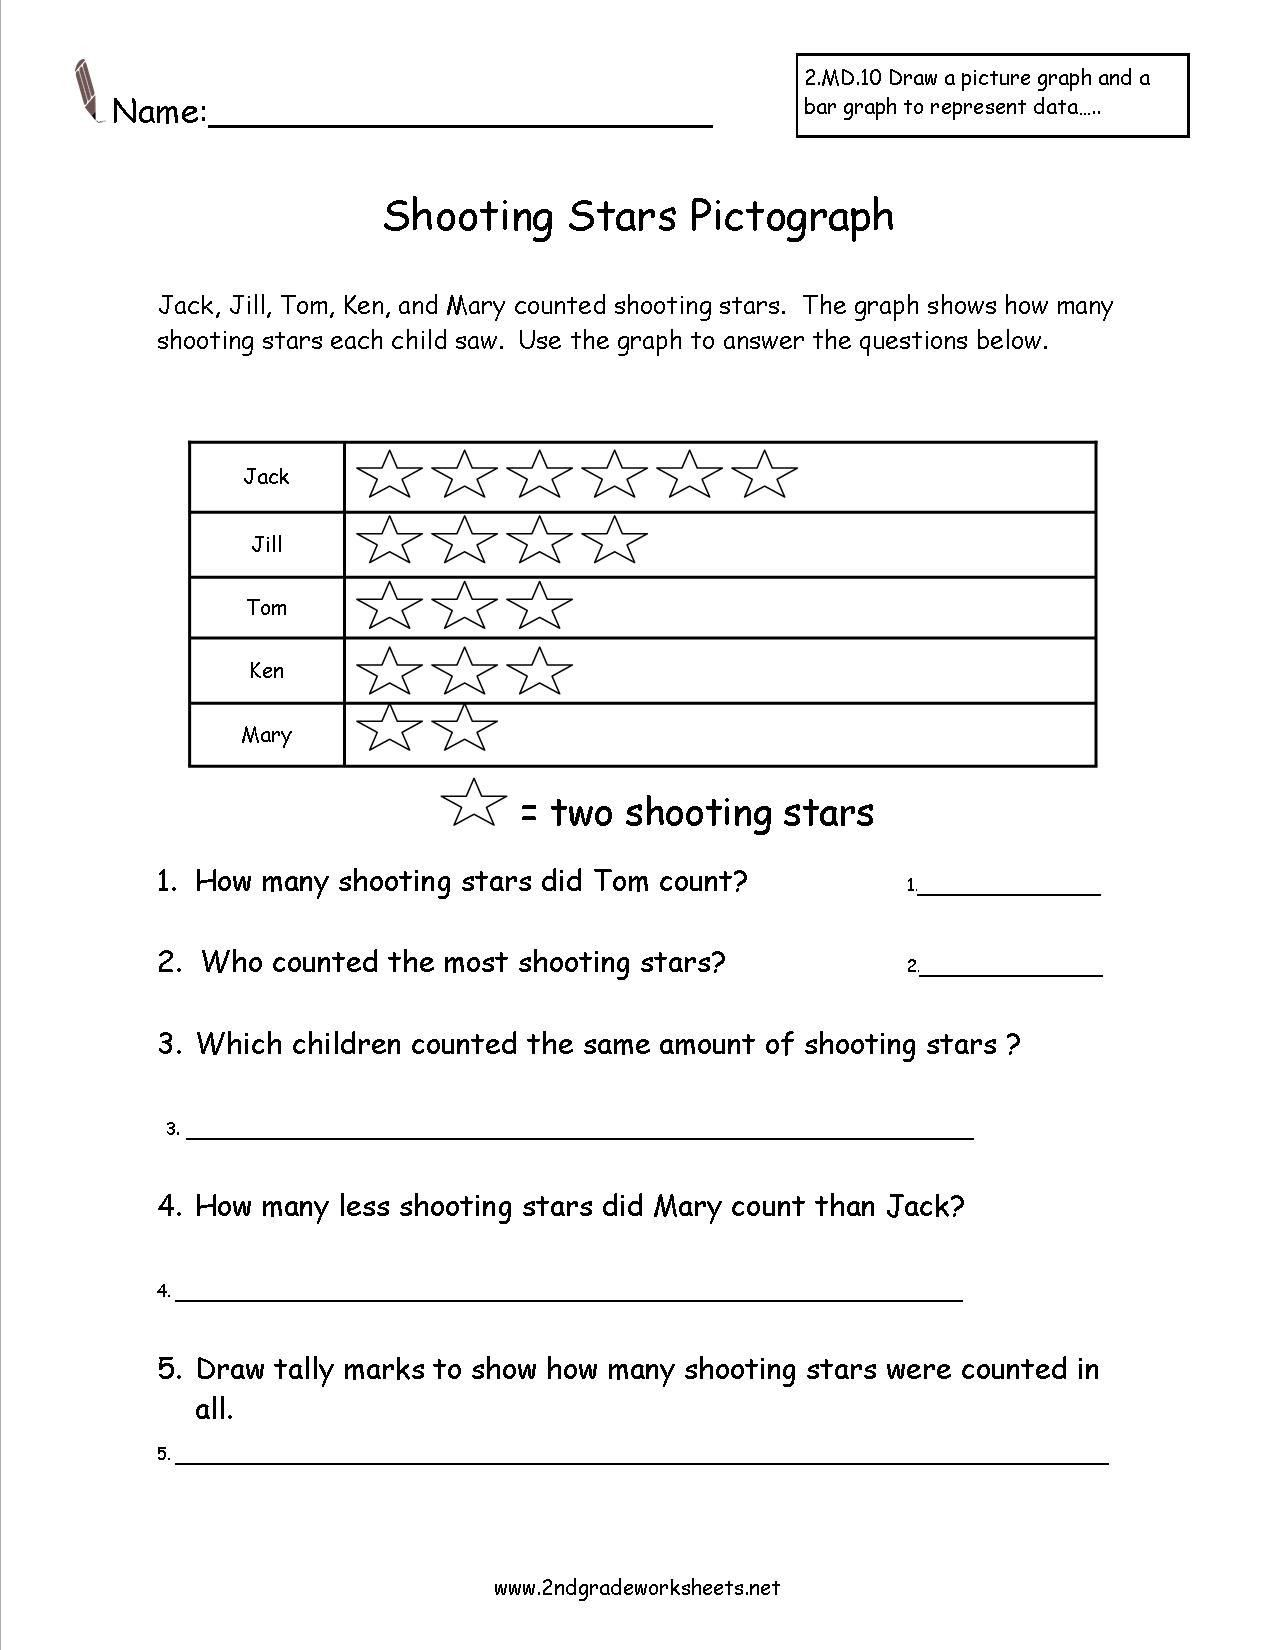 medium resolution of Pictograph Worksheets 2nd Grade Shooting Stars Pictograph Worksheet   Third grade  worksheets